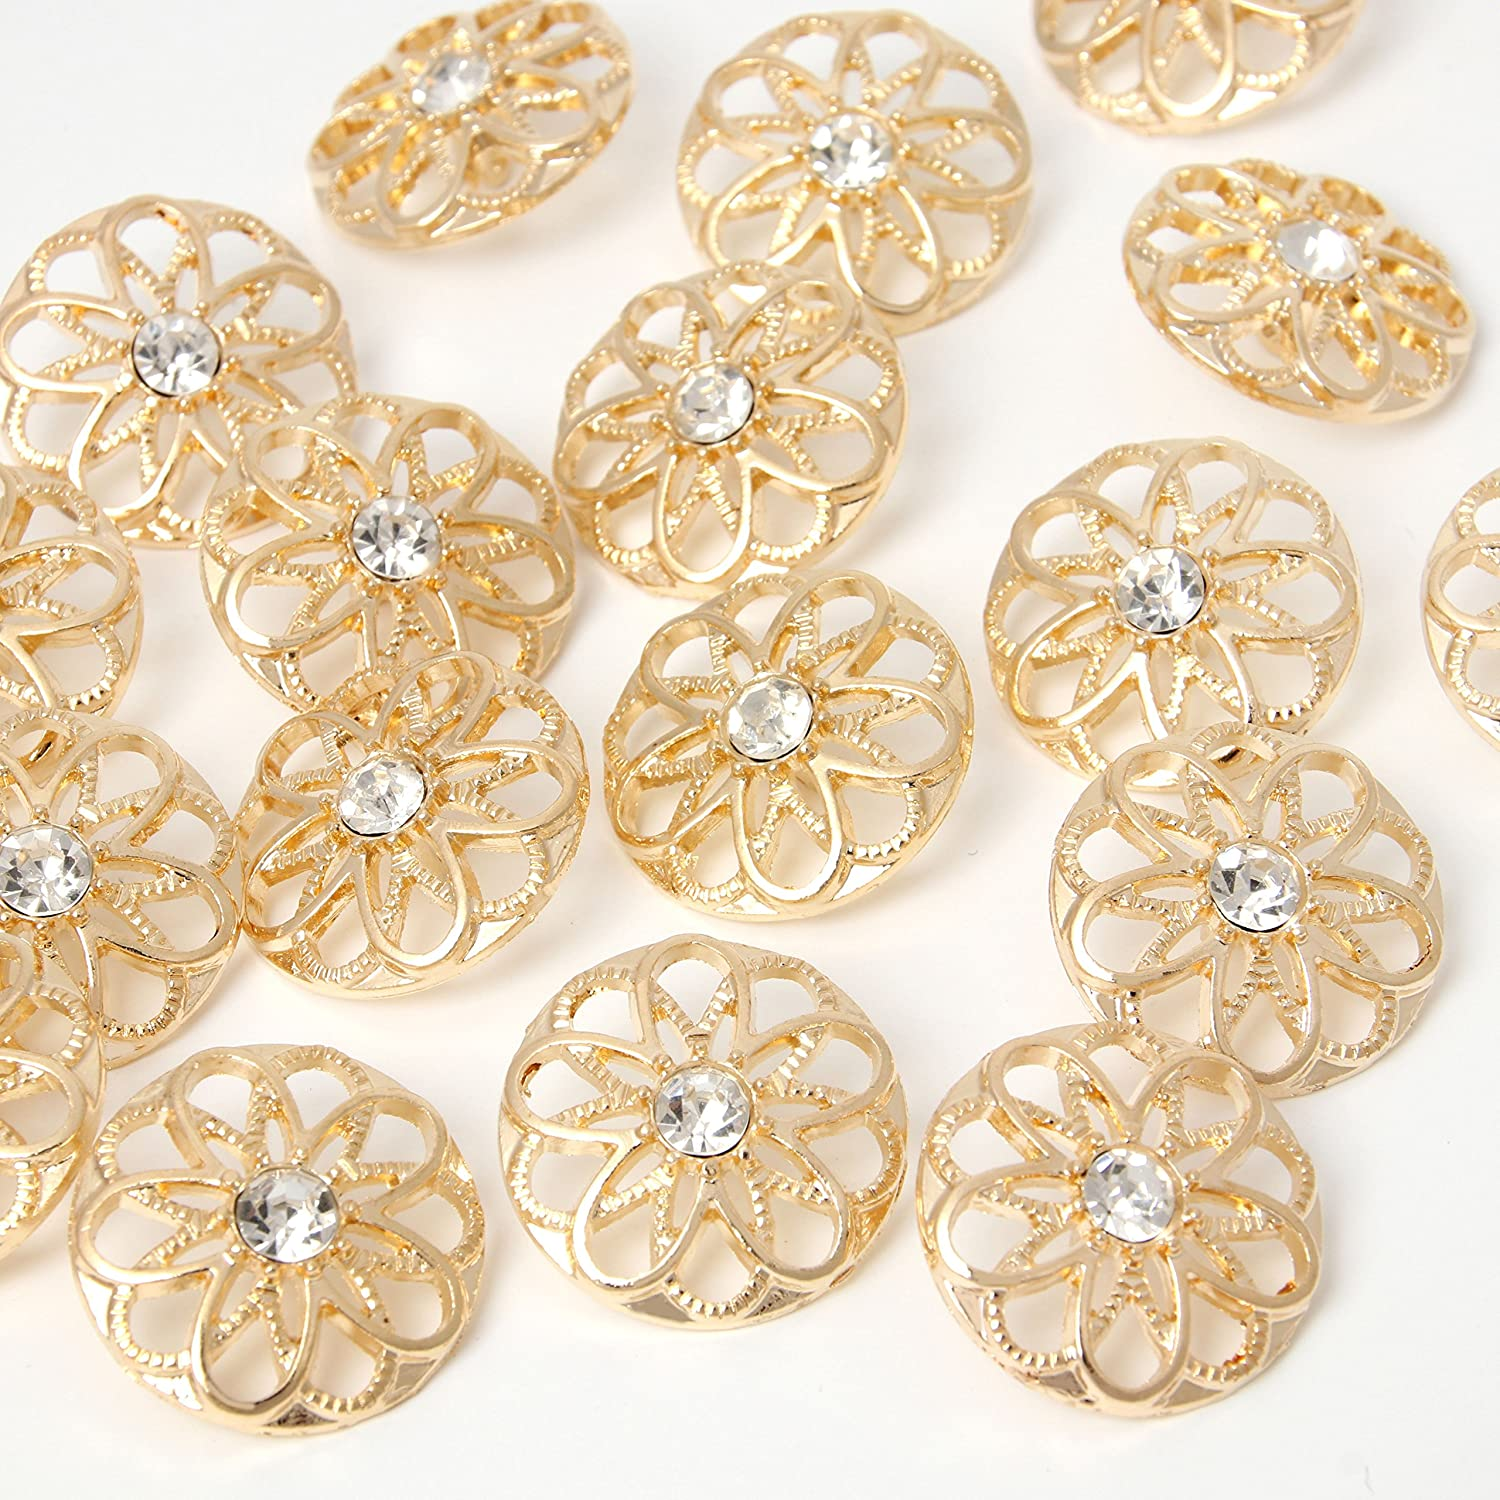 Gold Alloy Rhinestone Crystal Hollow Decorative Metal Cloth Buttons 25mm Style5 DIY Buttons Craft Supplies YAKA 24pcs Craft Buttons for Sewing Clothing